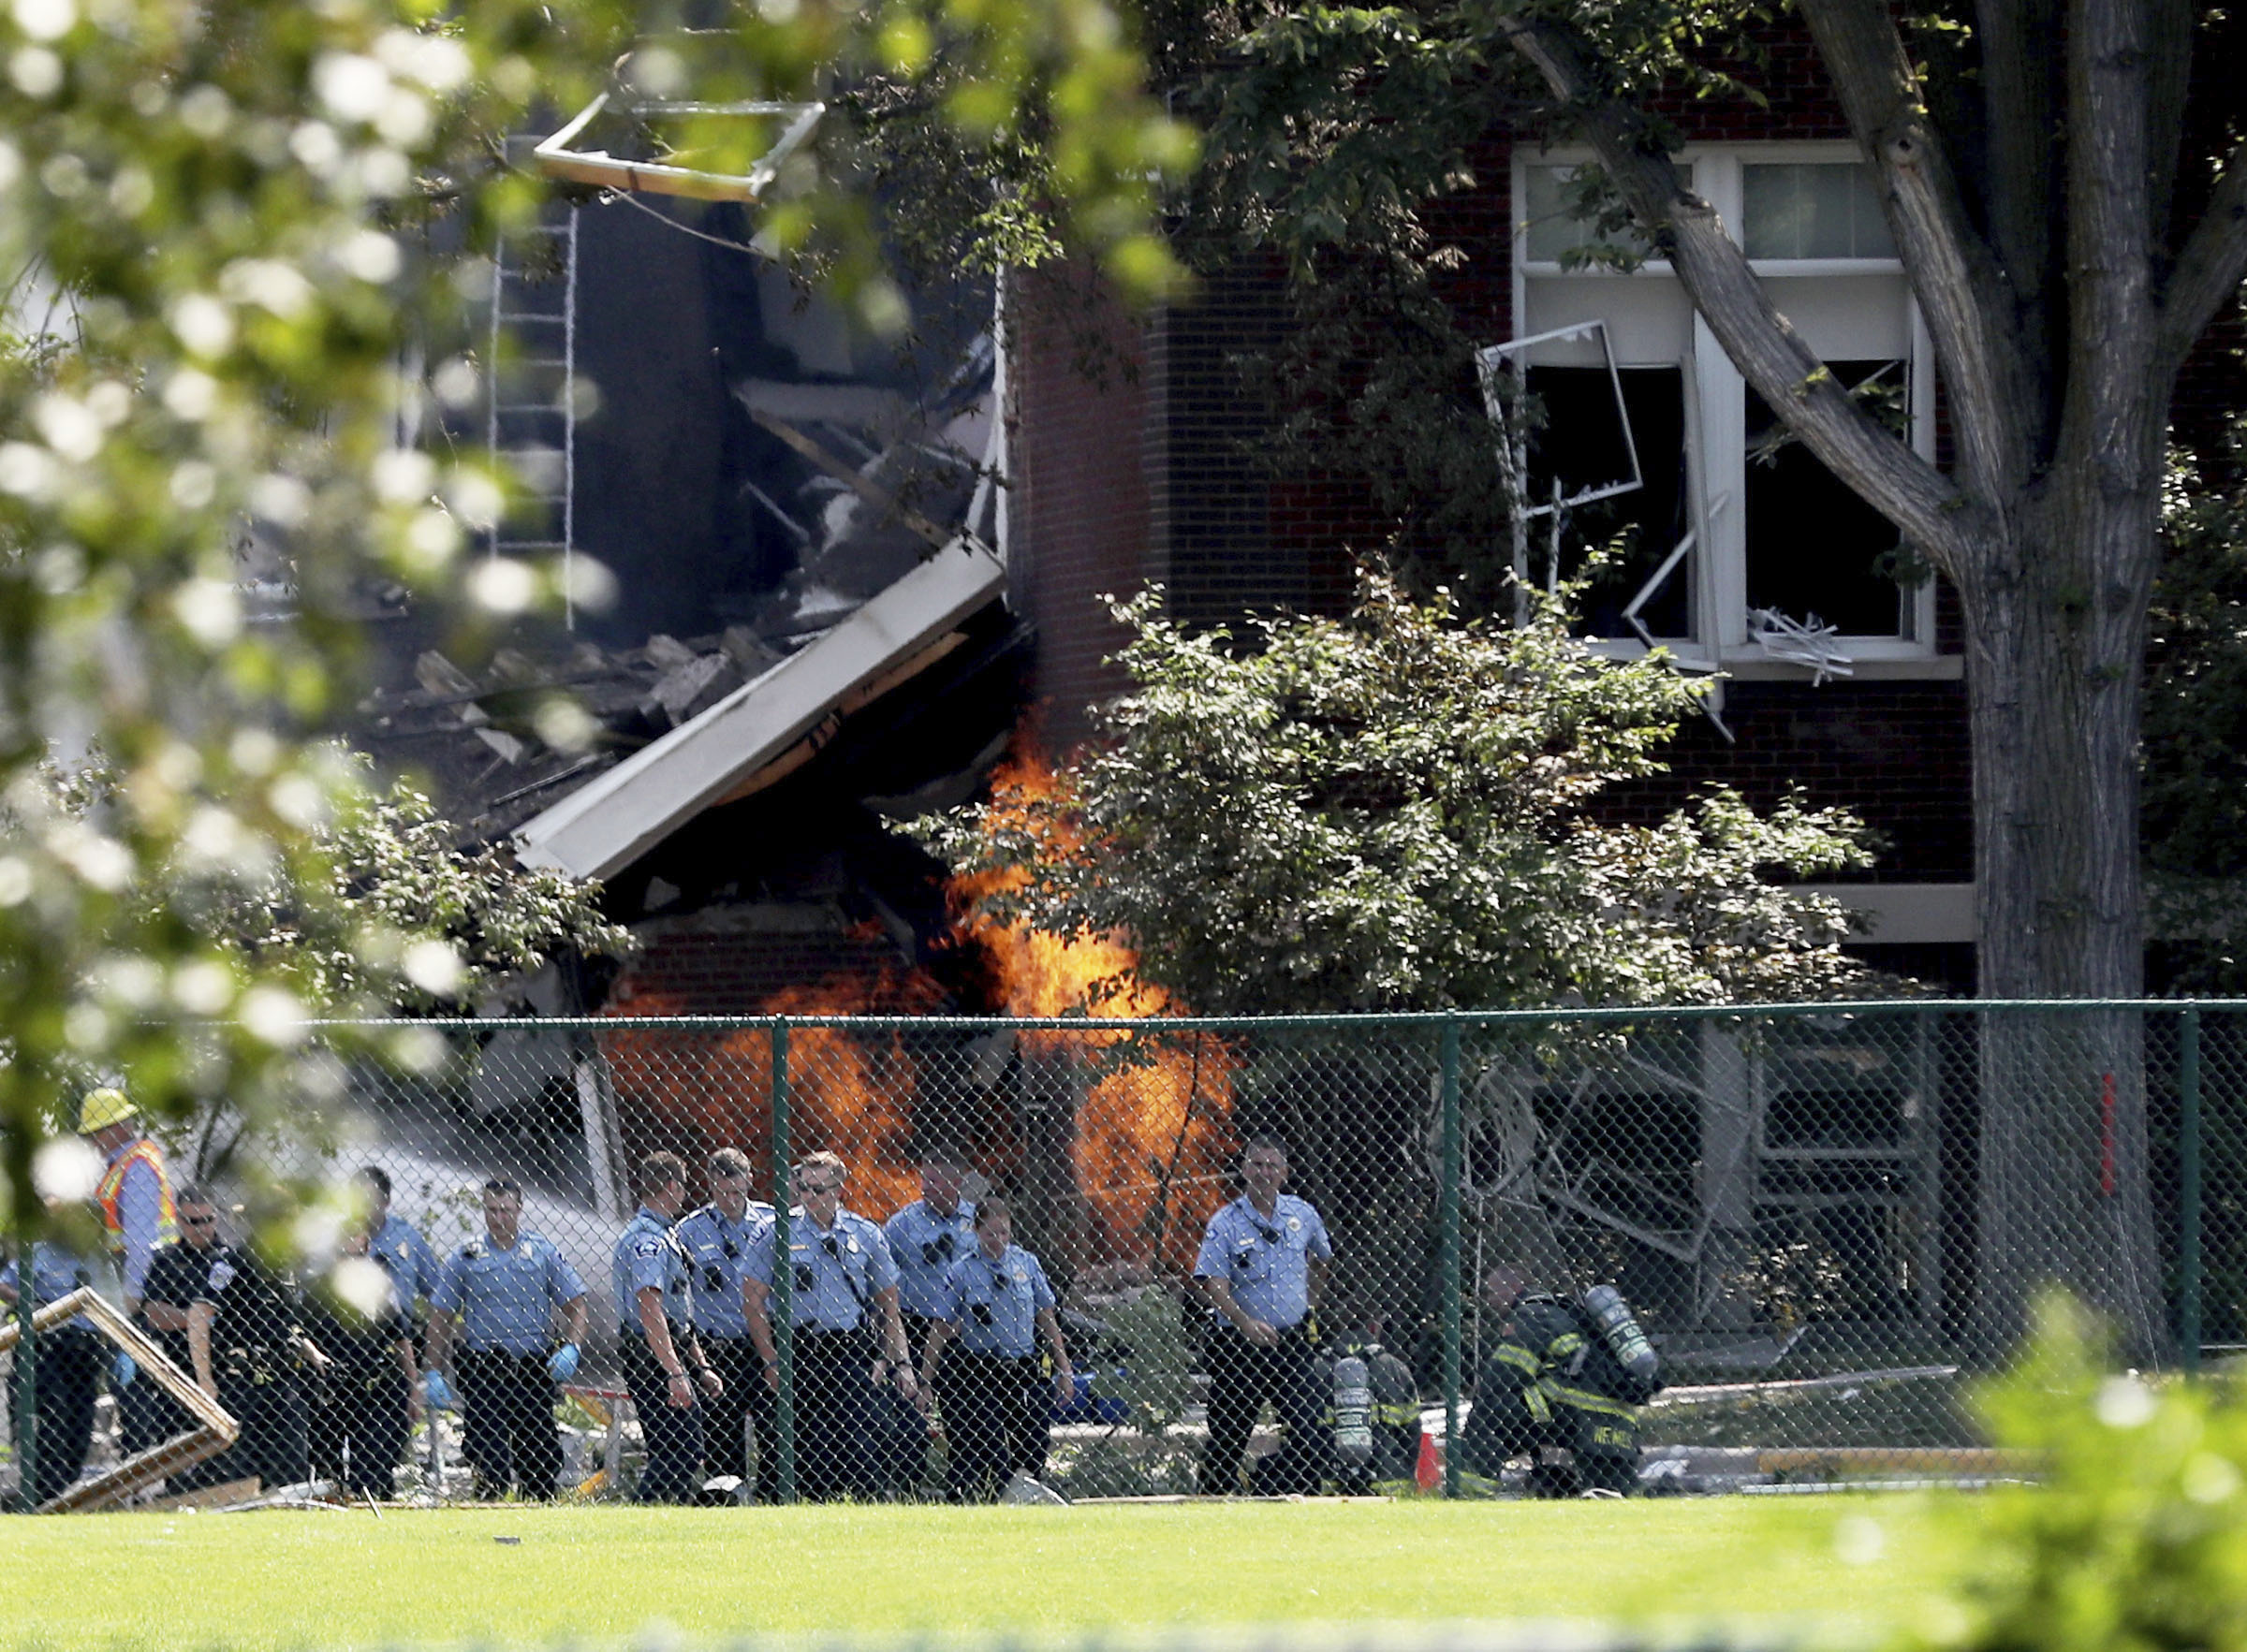 Emergency personnel move away as a gas fire continues to burn following an explosion at Minnehaha Academy on Aug. 2, 2017, in Minneapolis.